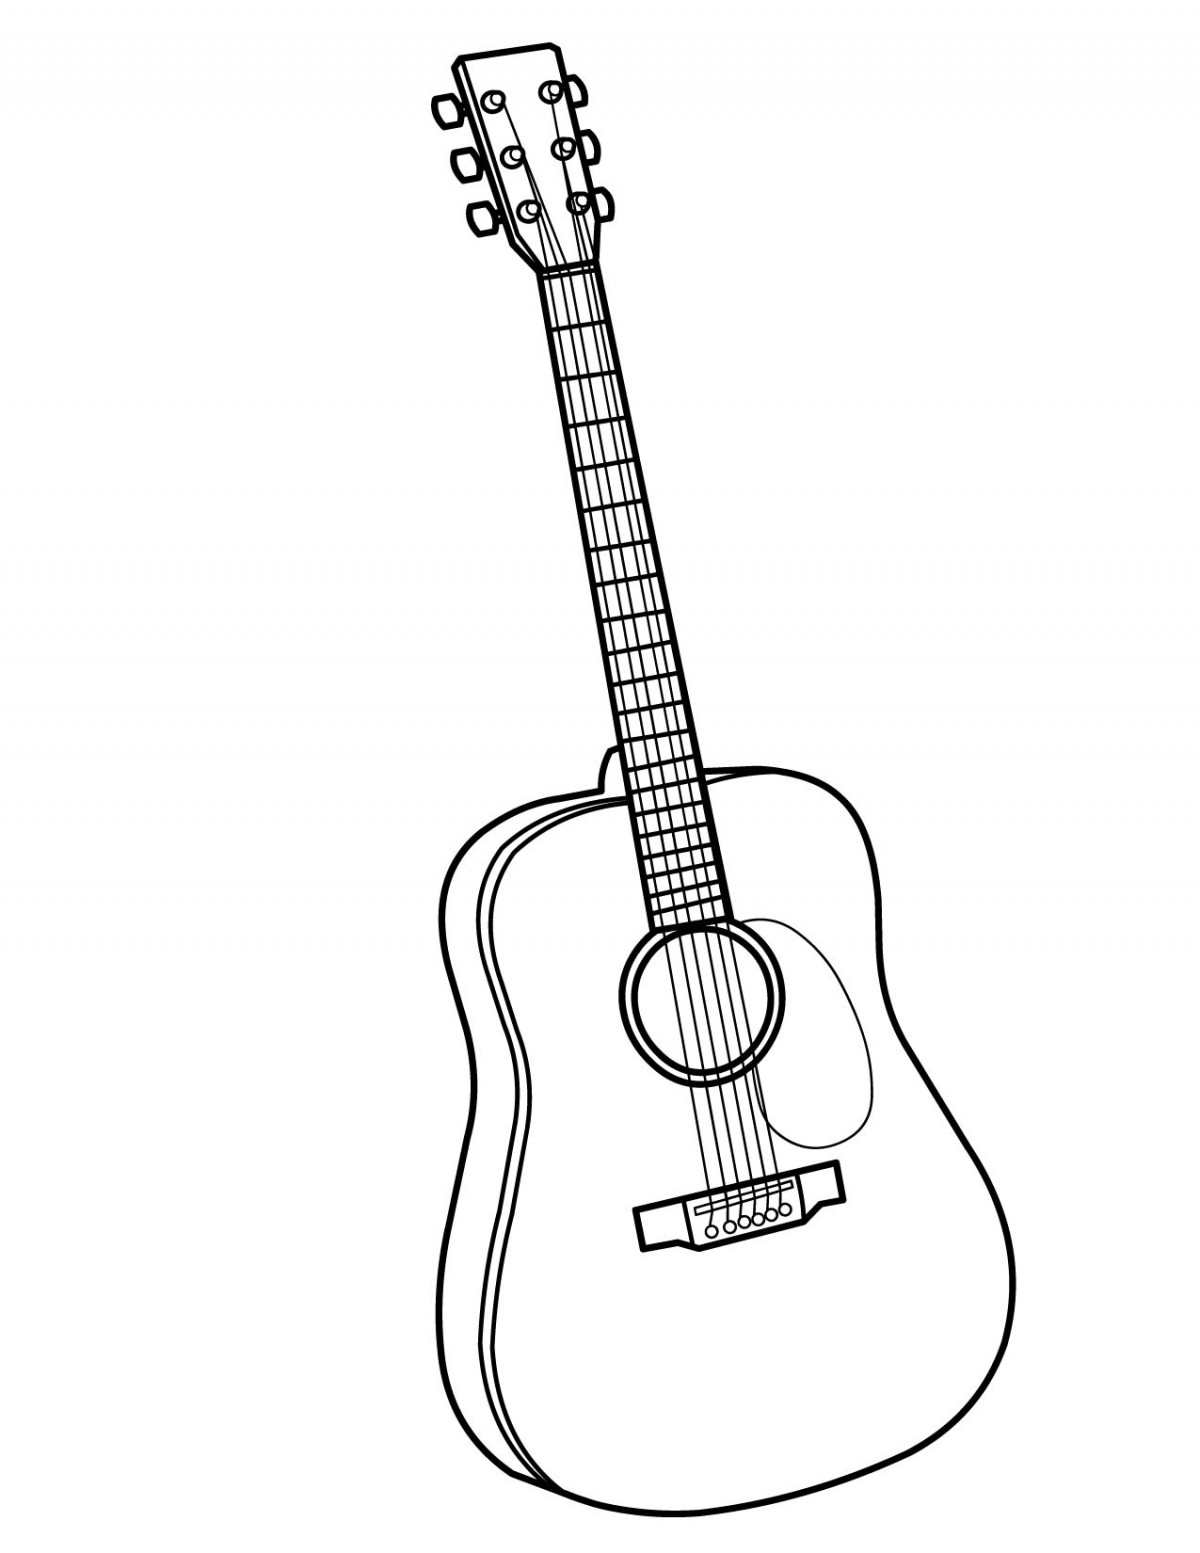 guitar coloring pages acoustic guitar line drawing at getdrawings free download guitar coloring pages